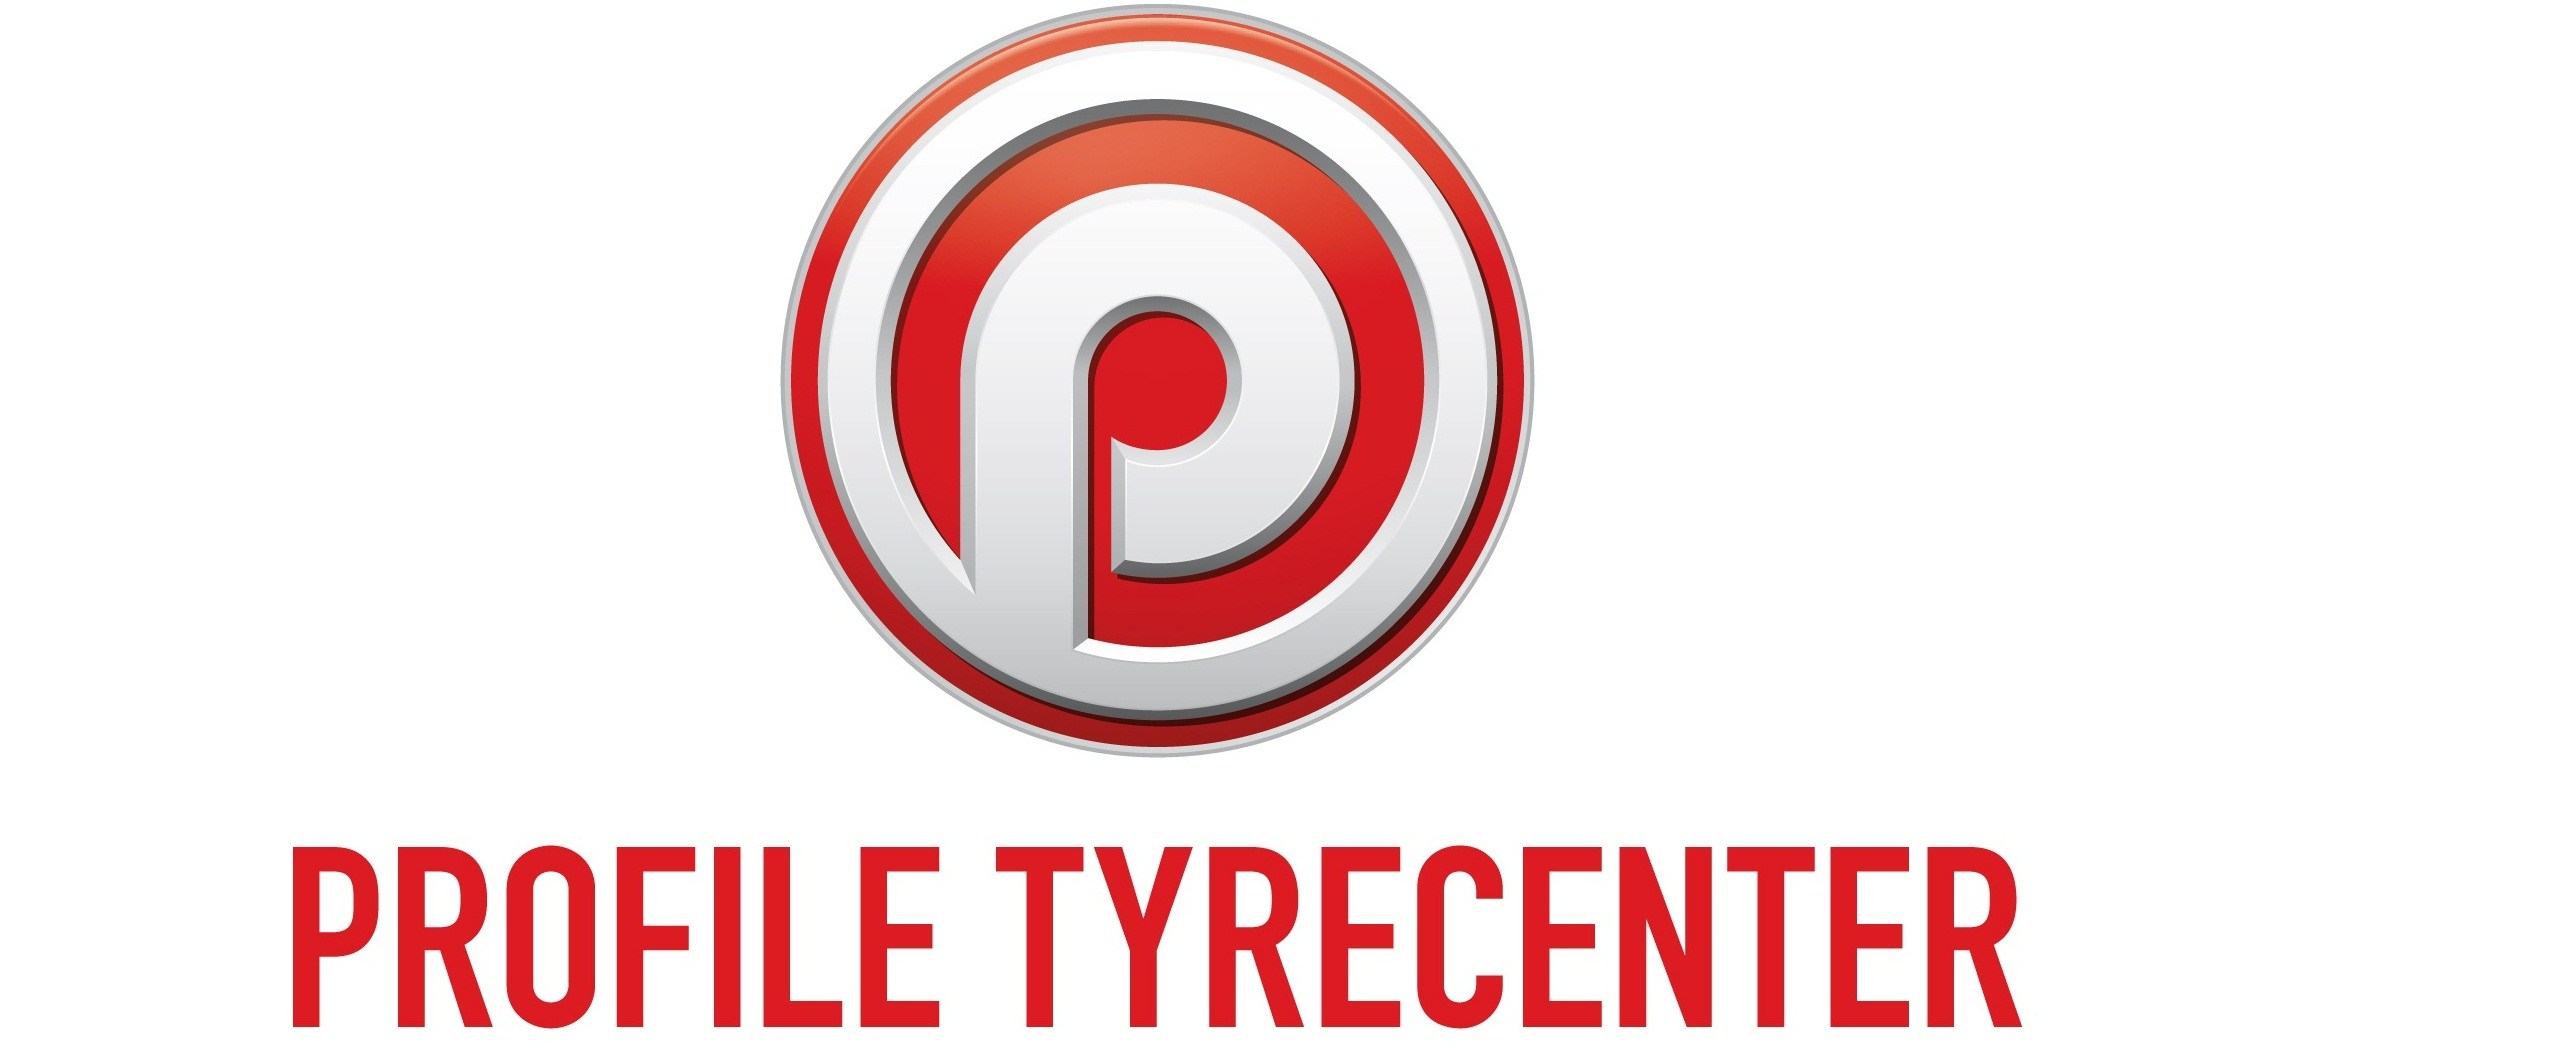 Profile-tyrecenter1